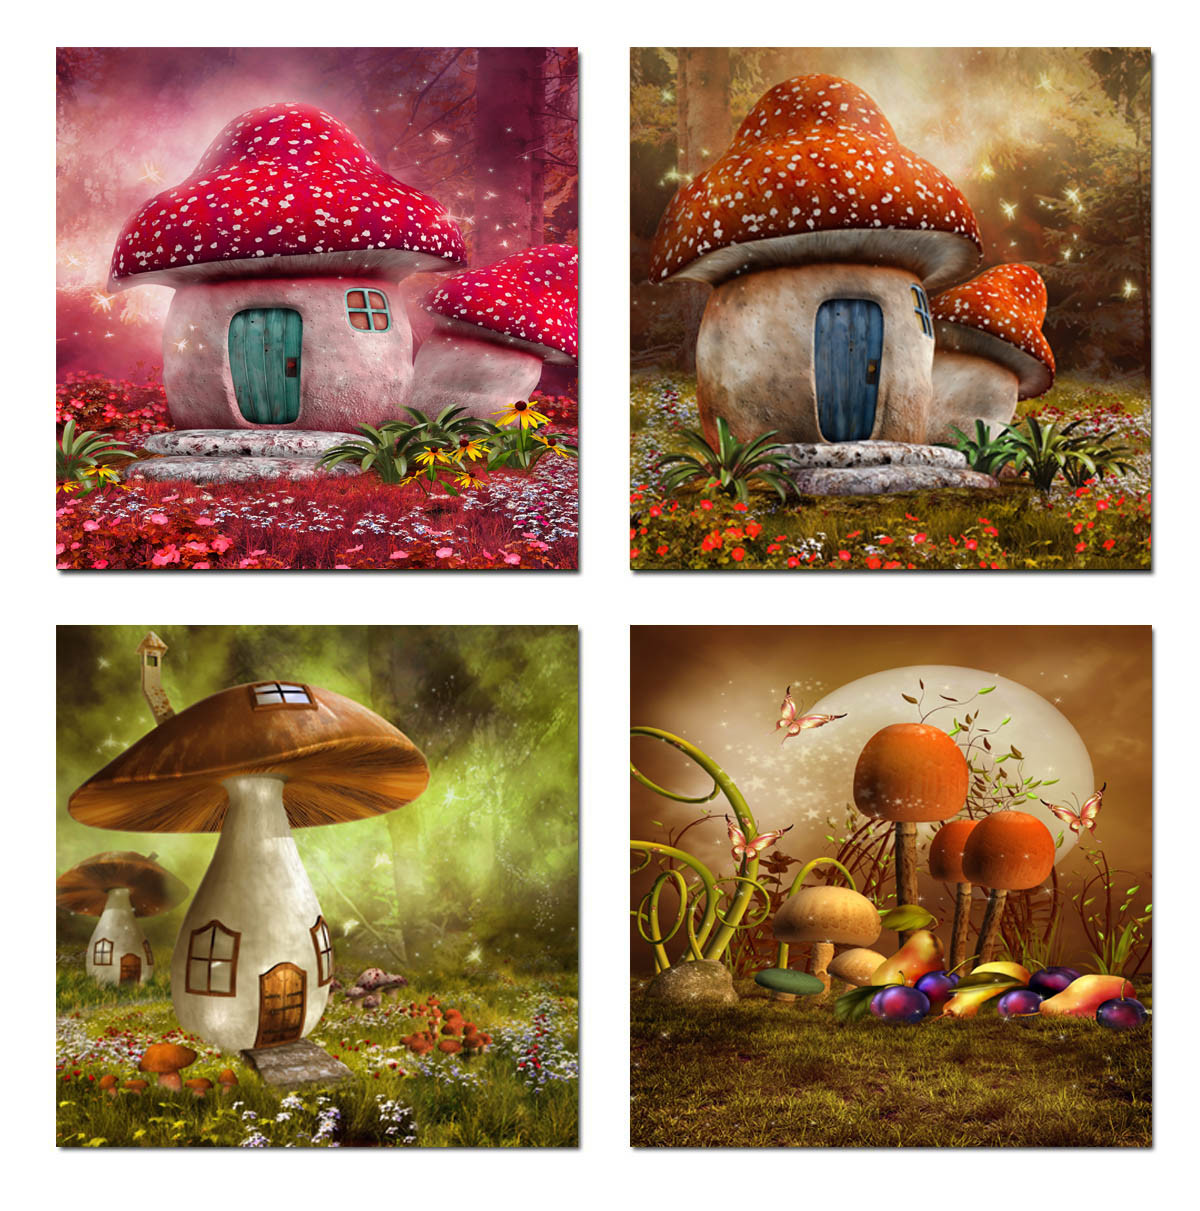 4 Piece Modern Wall Art Printed Painting Mushroom Painting Room Decor Framed Art Picture Painted on Canvas Home Decoration Mc-243